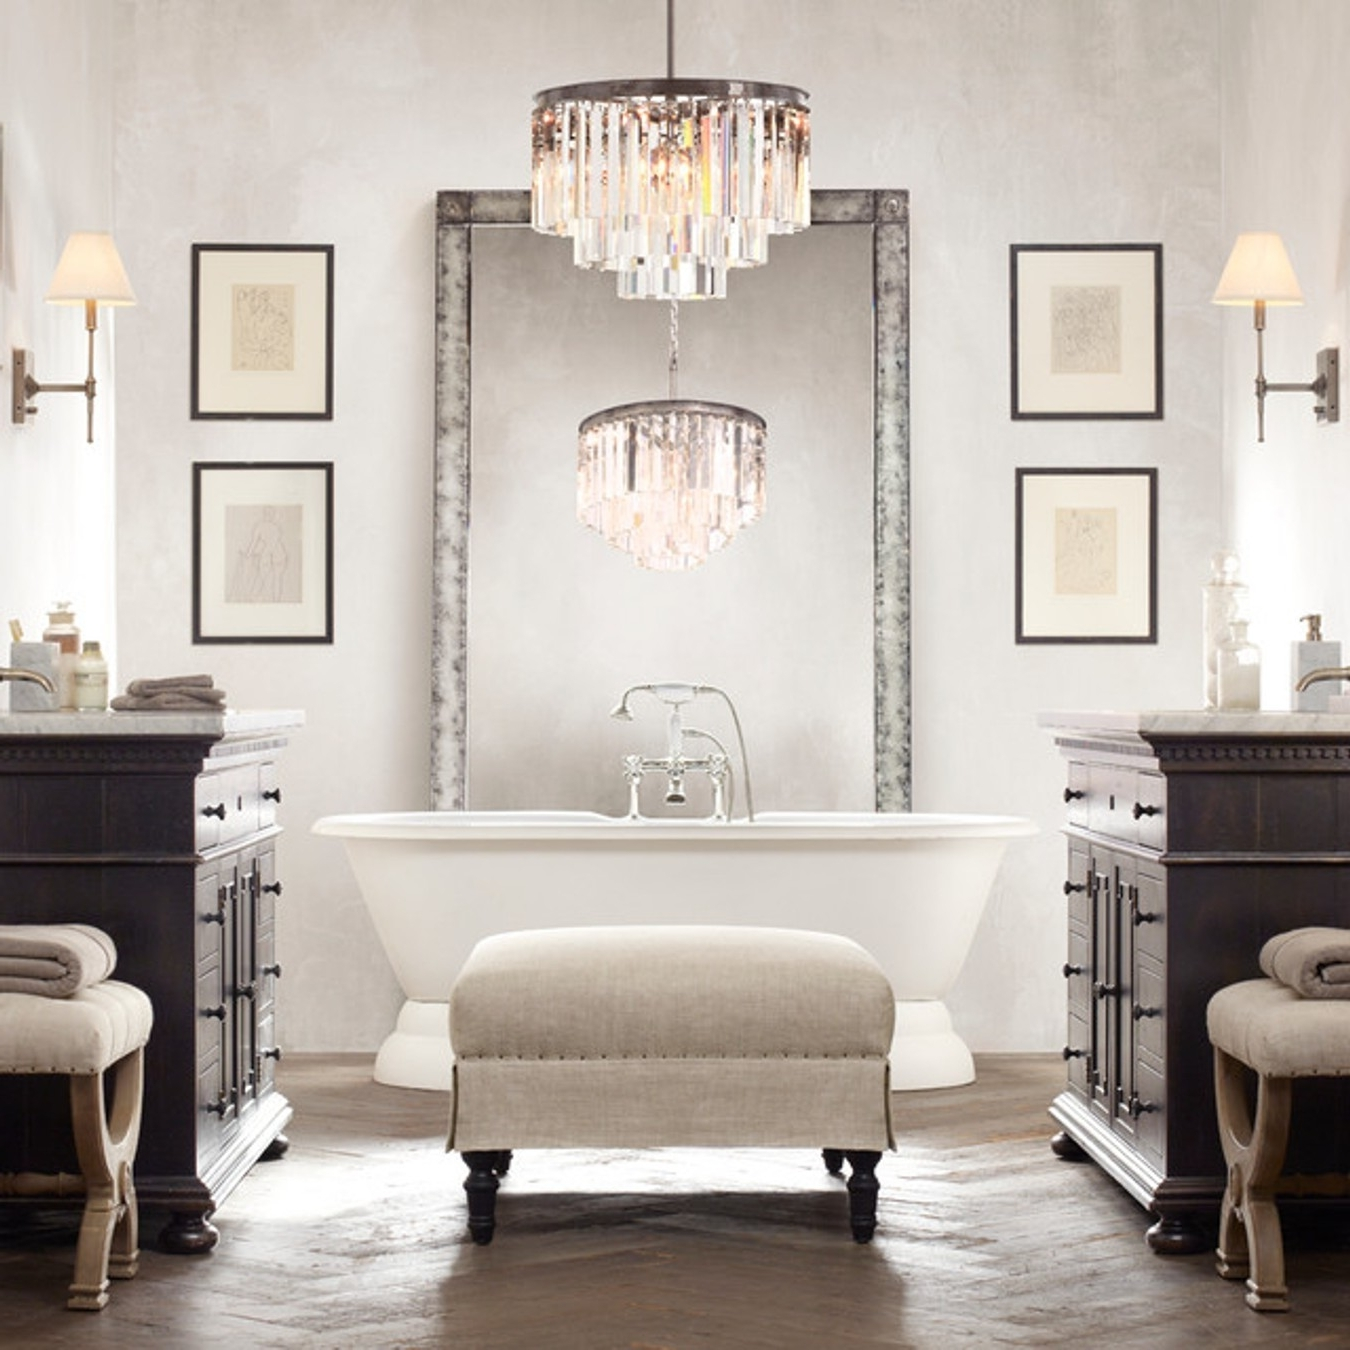 Chandelier In The Bathroom With 2019 Bedroom & Bathroom: Charming Bathroom Chandeliers For Contemporary (View 18 of 20)